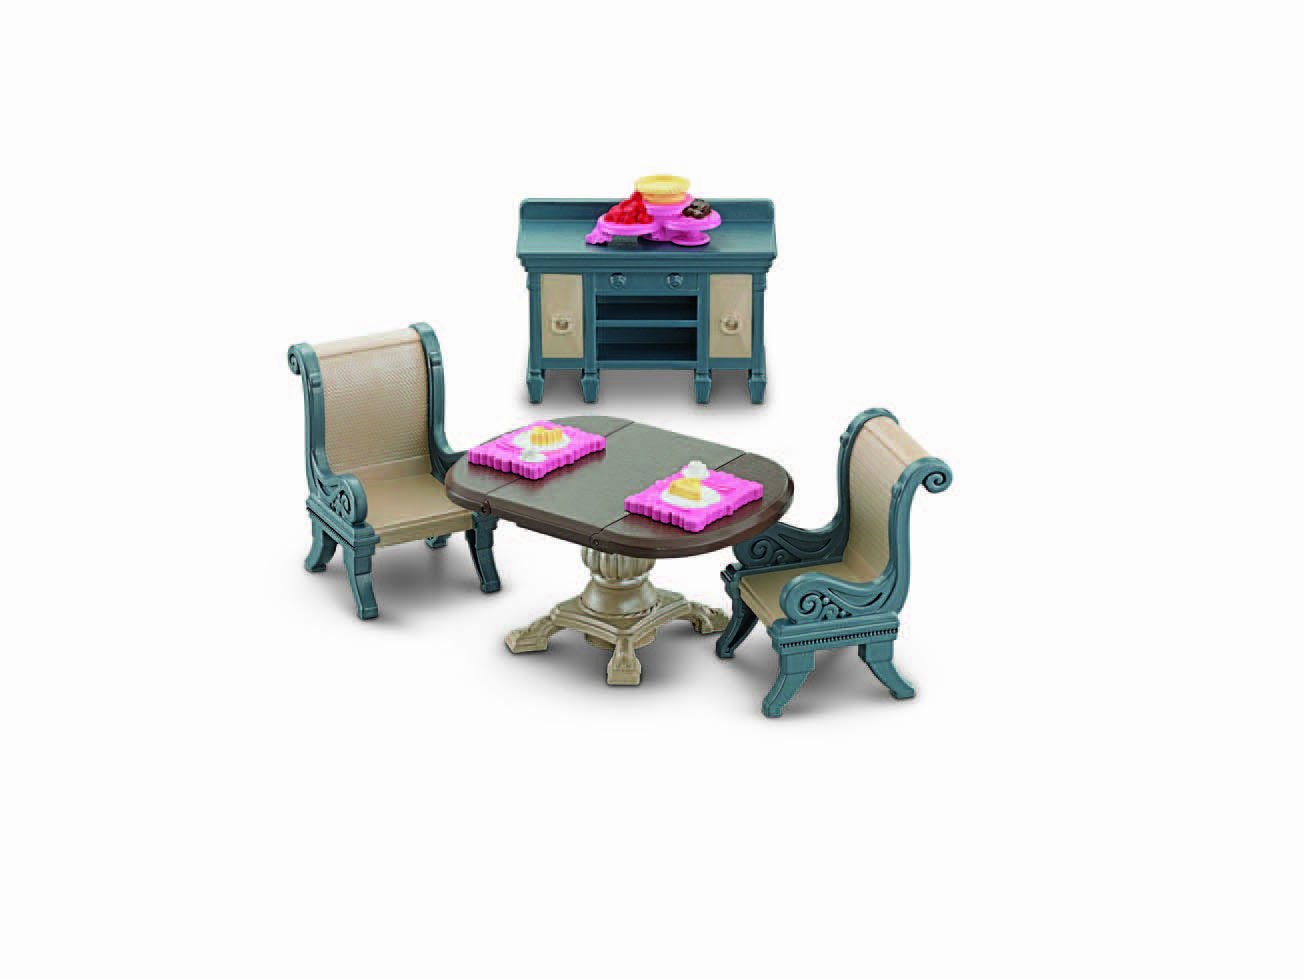 Fisher price doll house furniture - Fisher Price Doll House Furniture 36